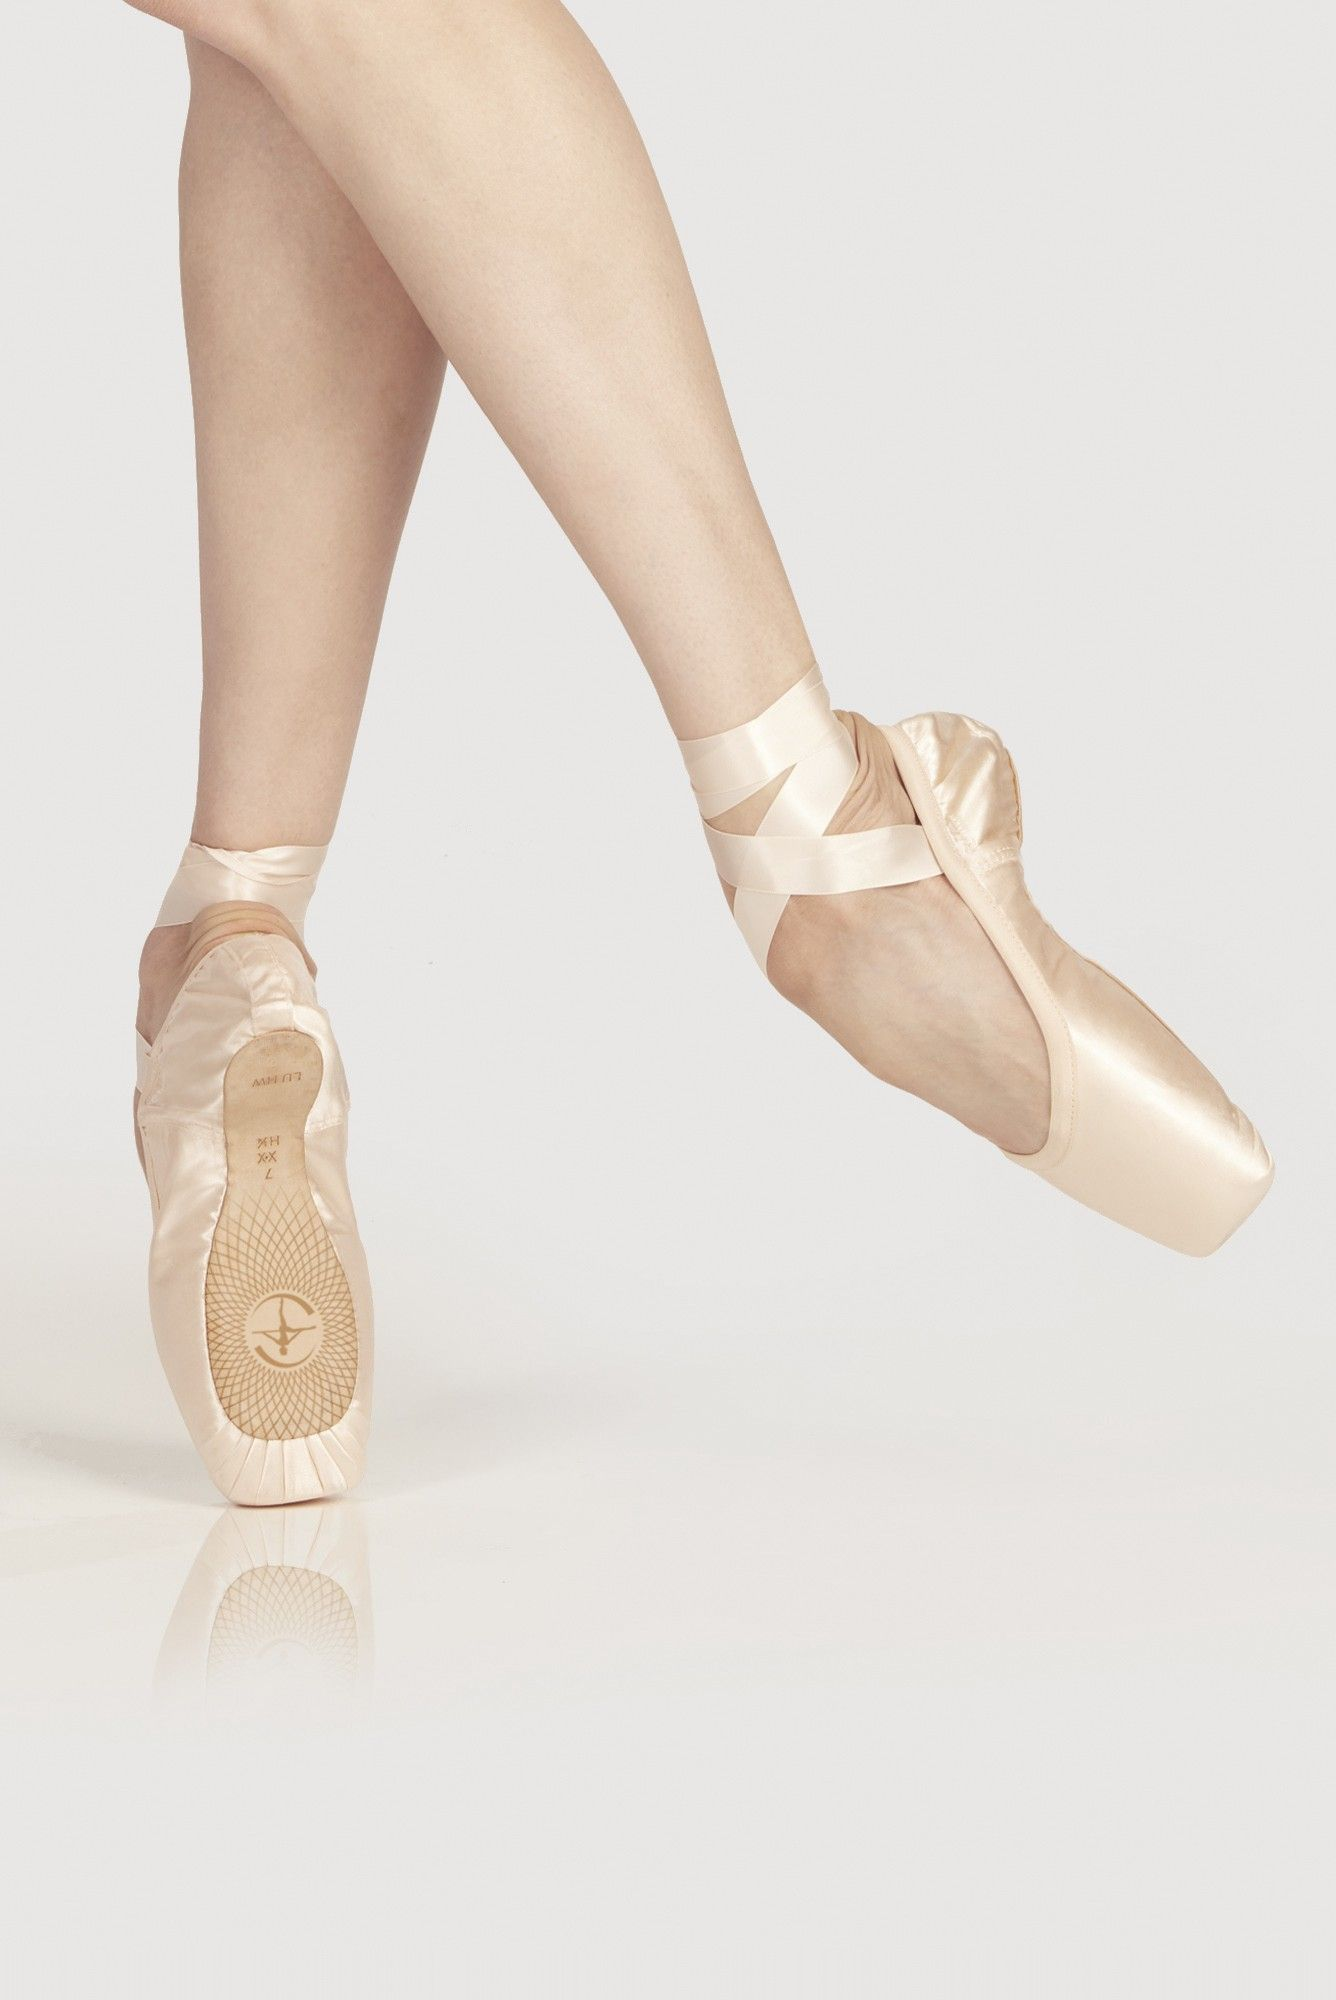 POINTE SHOES OMEGA  Wear Moi